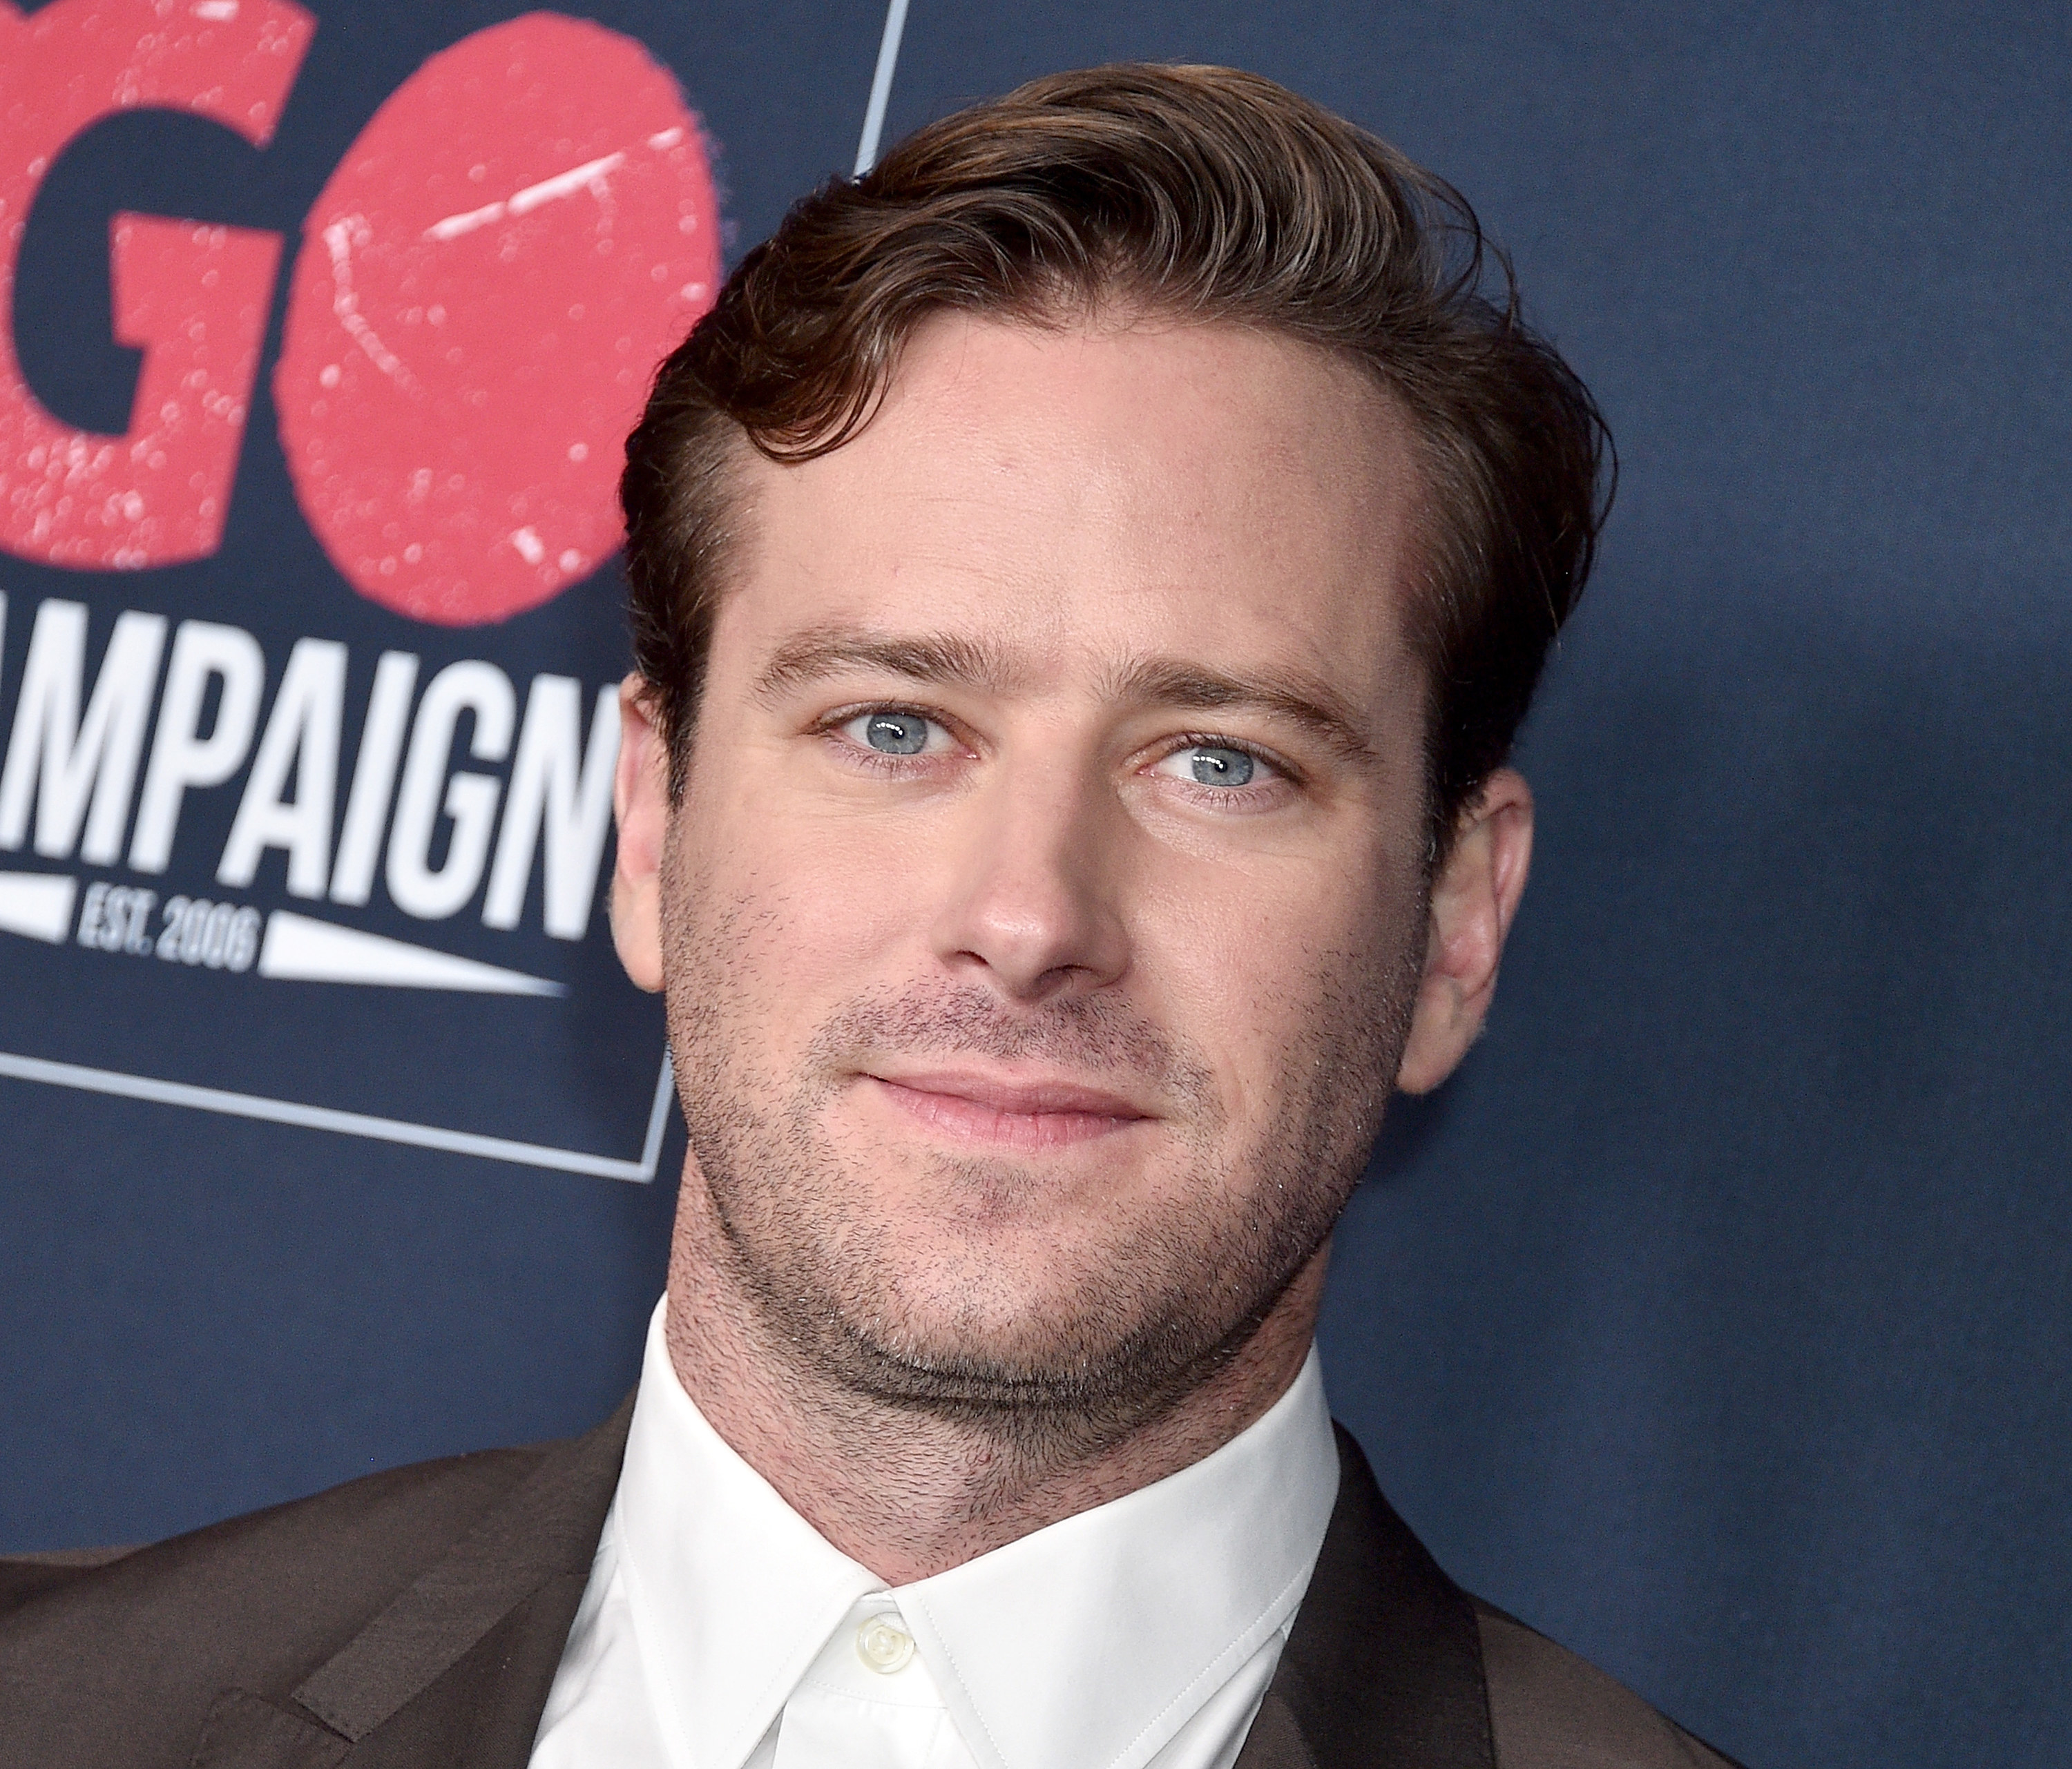 Armie Hammer poses for photographers at the Go Campaign's 13th Annual Go Gala in Hollywood on November 16, 2019